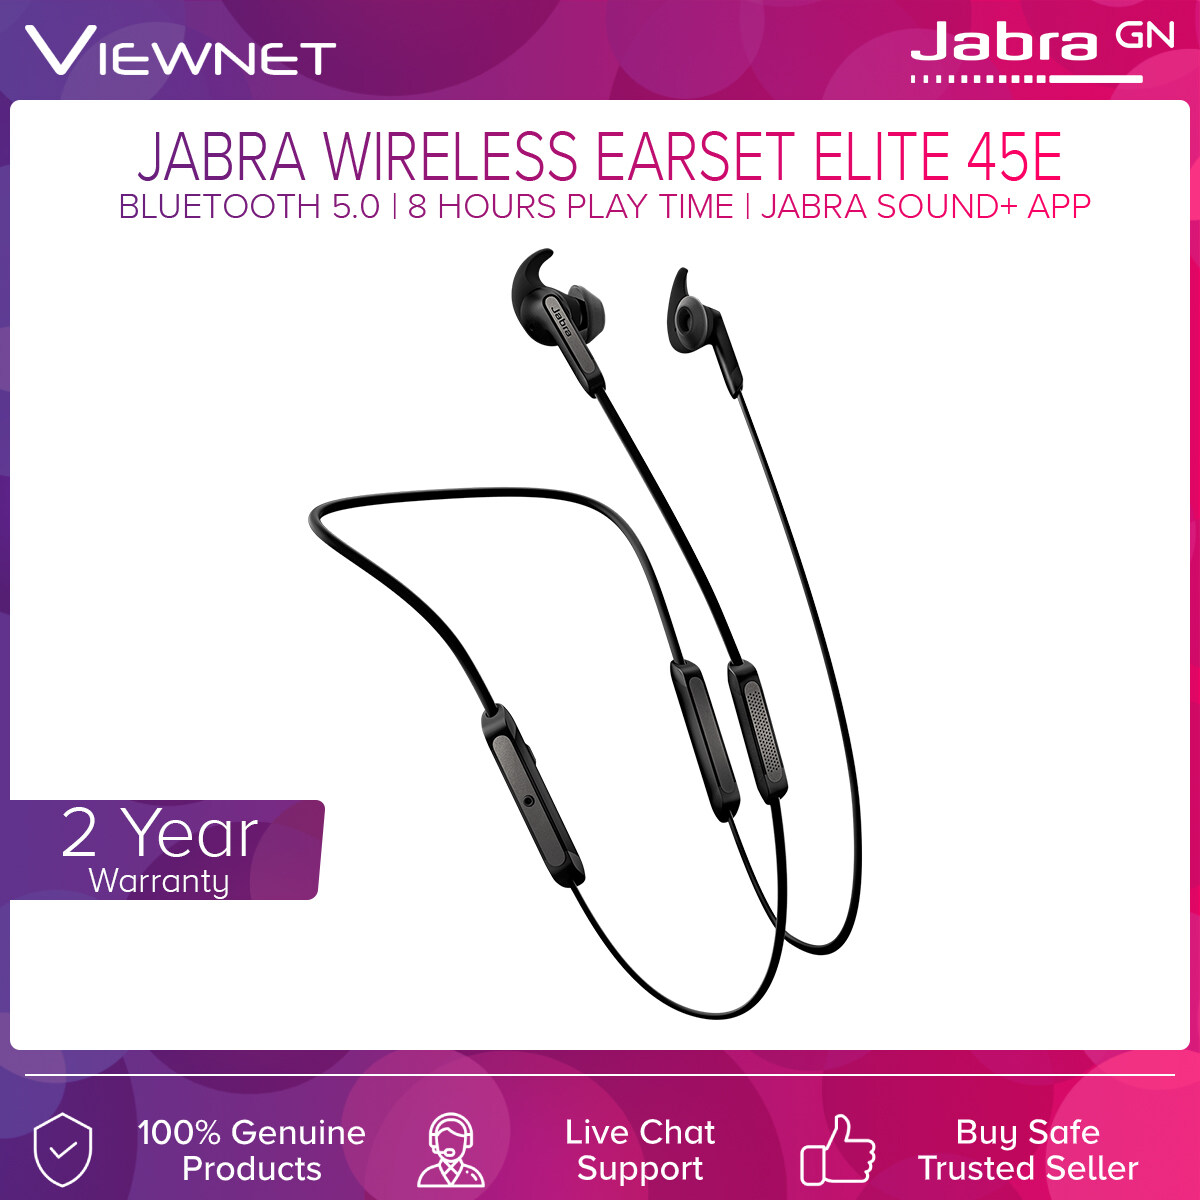 Jabra Wireless Headset Elite 45E with Bluetooth 5.0 Connection, Jabra Sound+ App Support, 8 Hours Play Time, IP54 Rated Dust Resistant and Water Splashes